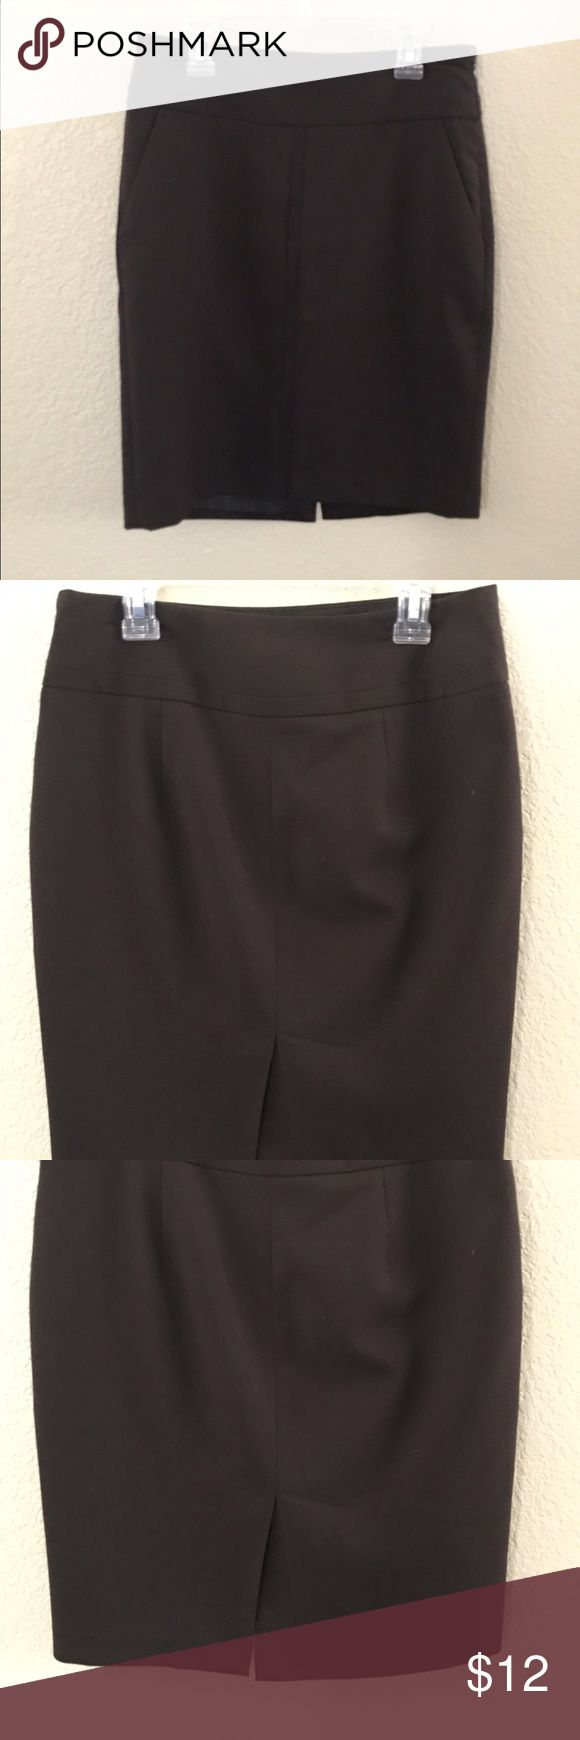 The Limited Chocolate Brown Pencil Skirt size 0 Brown pencil skirt✏️✏️ from the limited. In Mint Condition. Size 0 The Limited Skirts Pencil